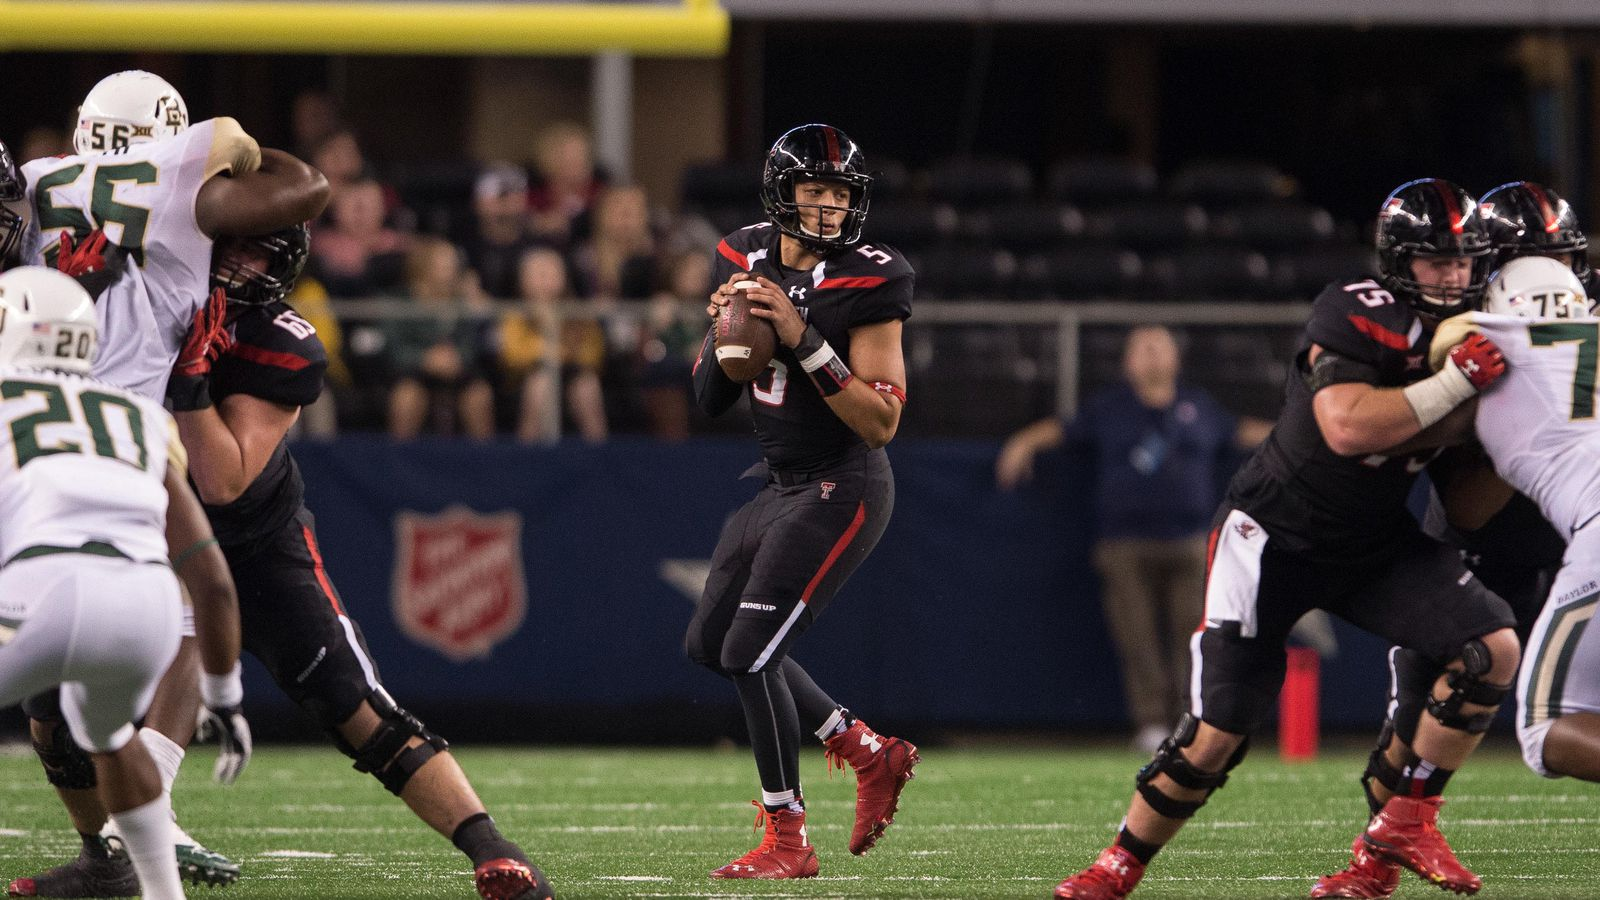 The official website for the athletics  2018 Texas Tech University